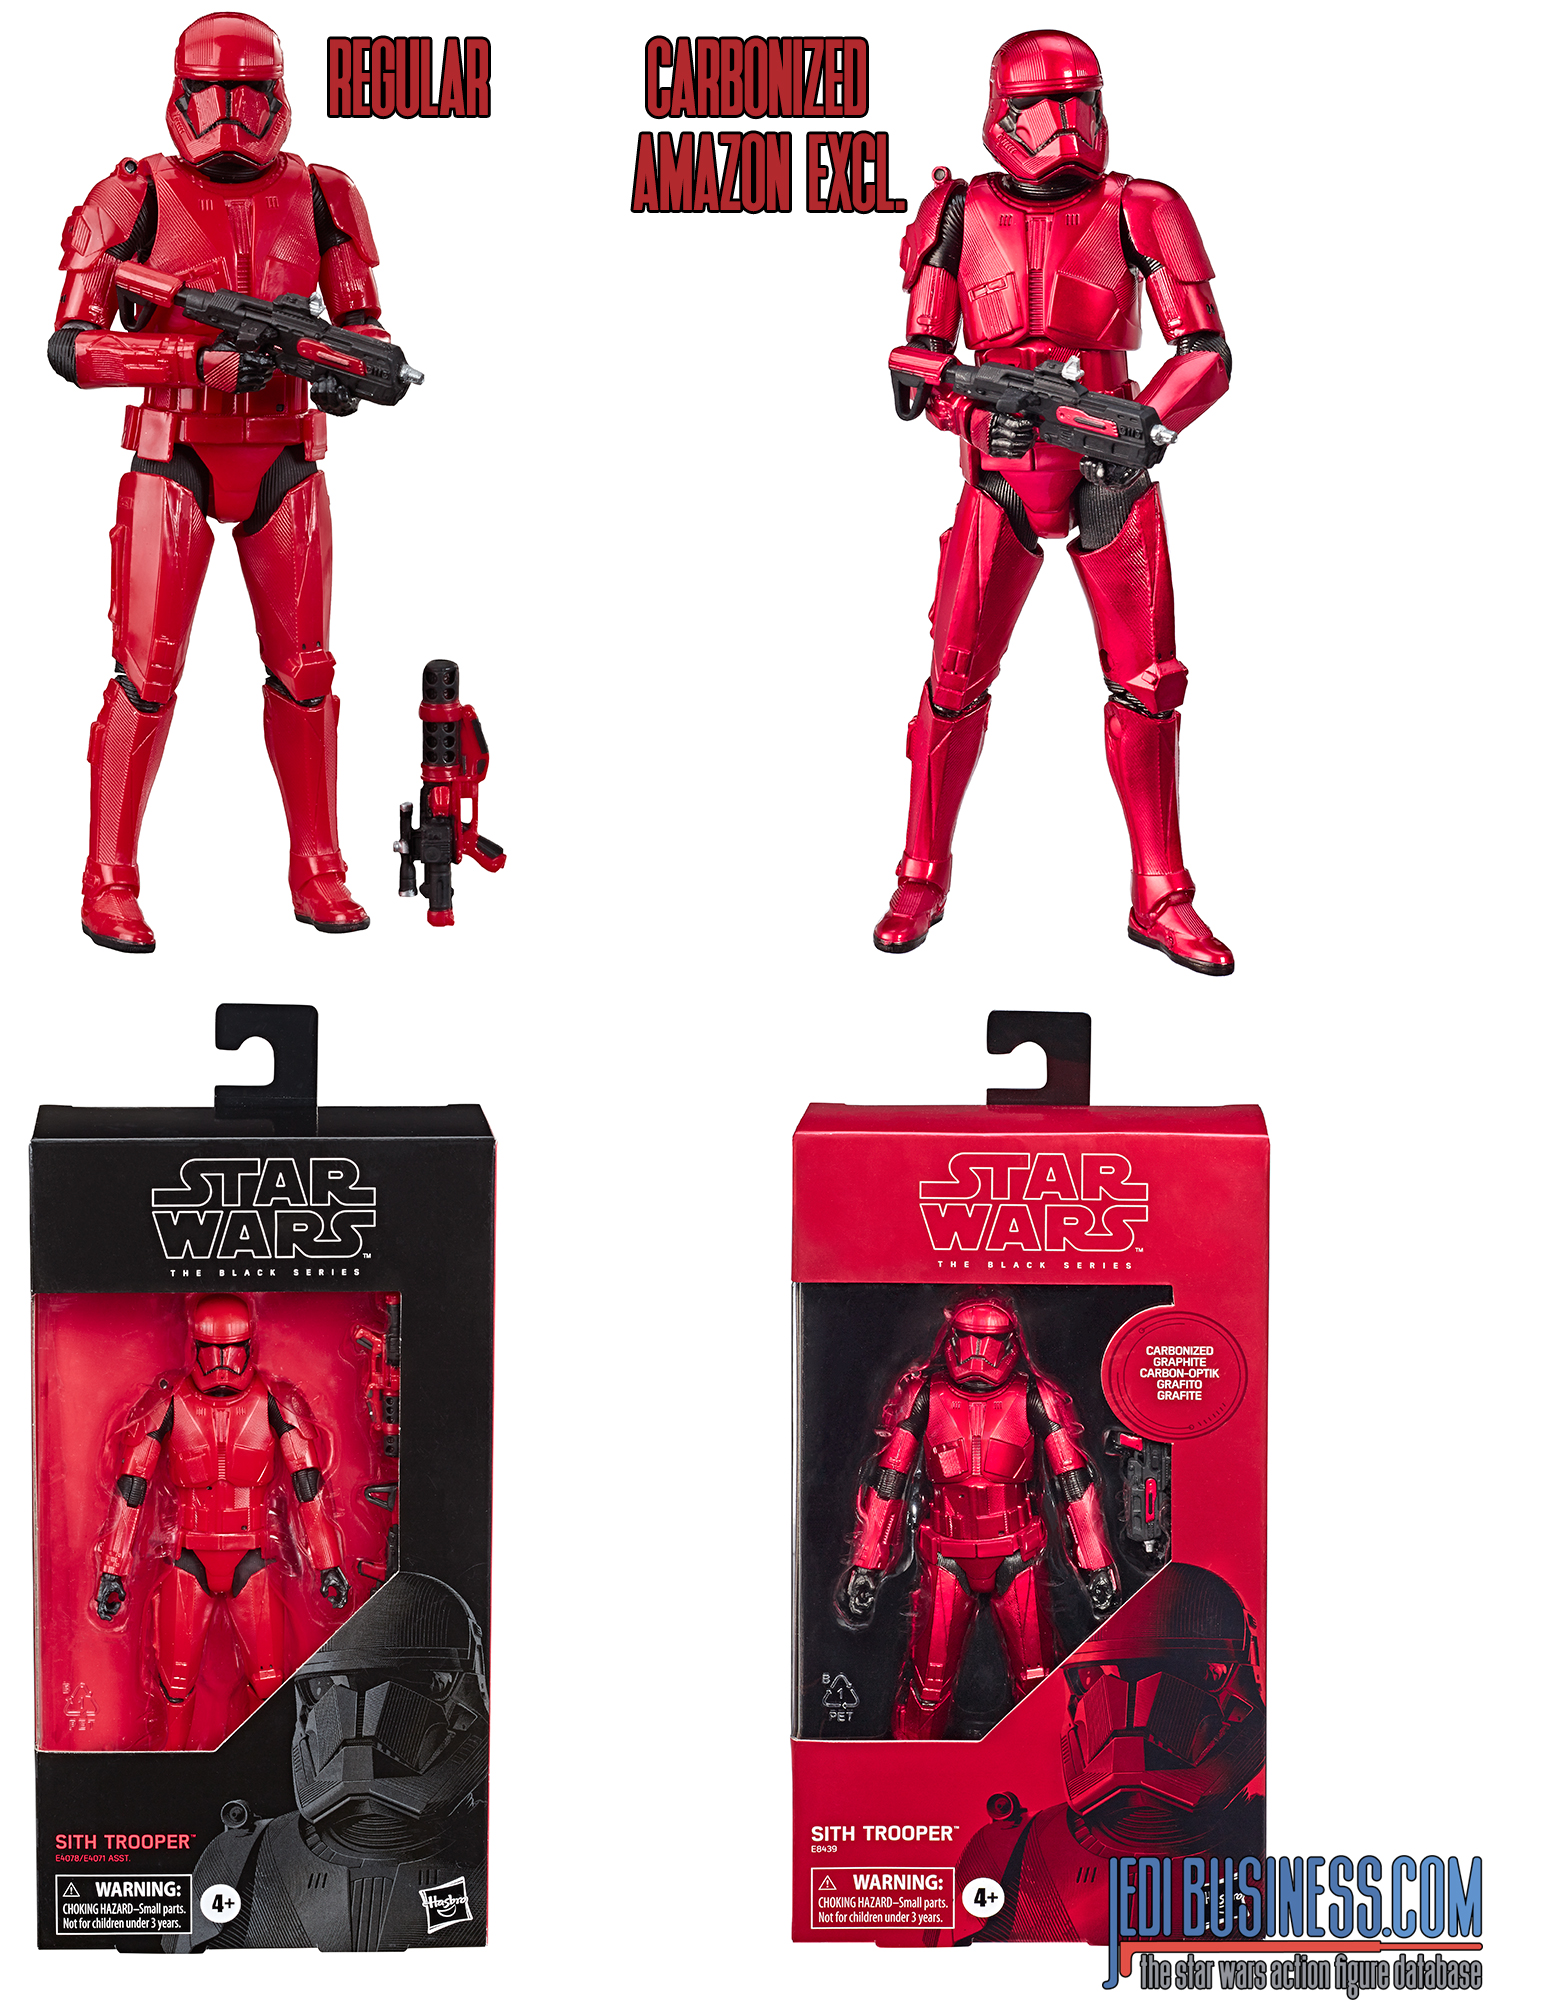 Black Series  Sith Trooper carbonized